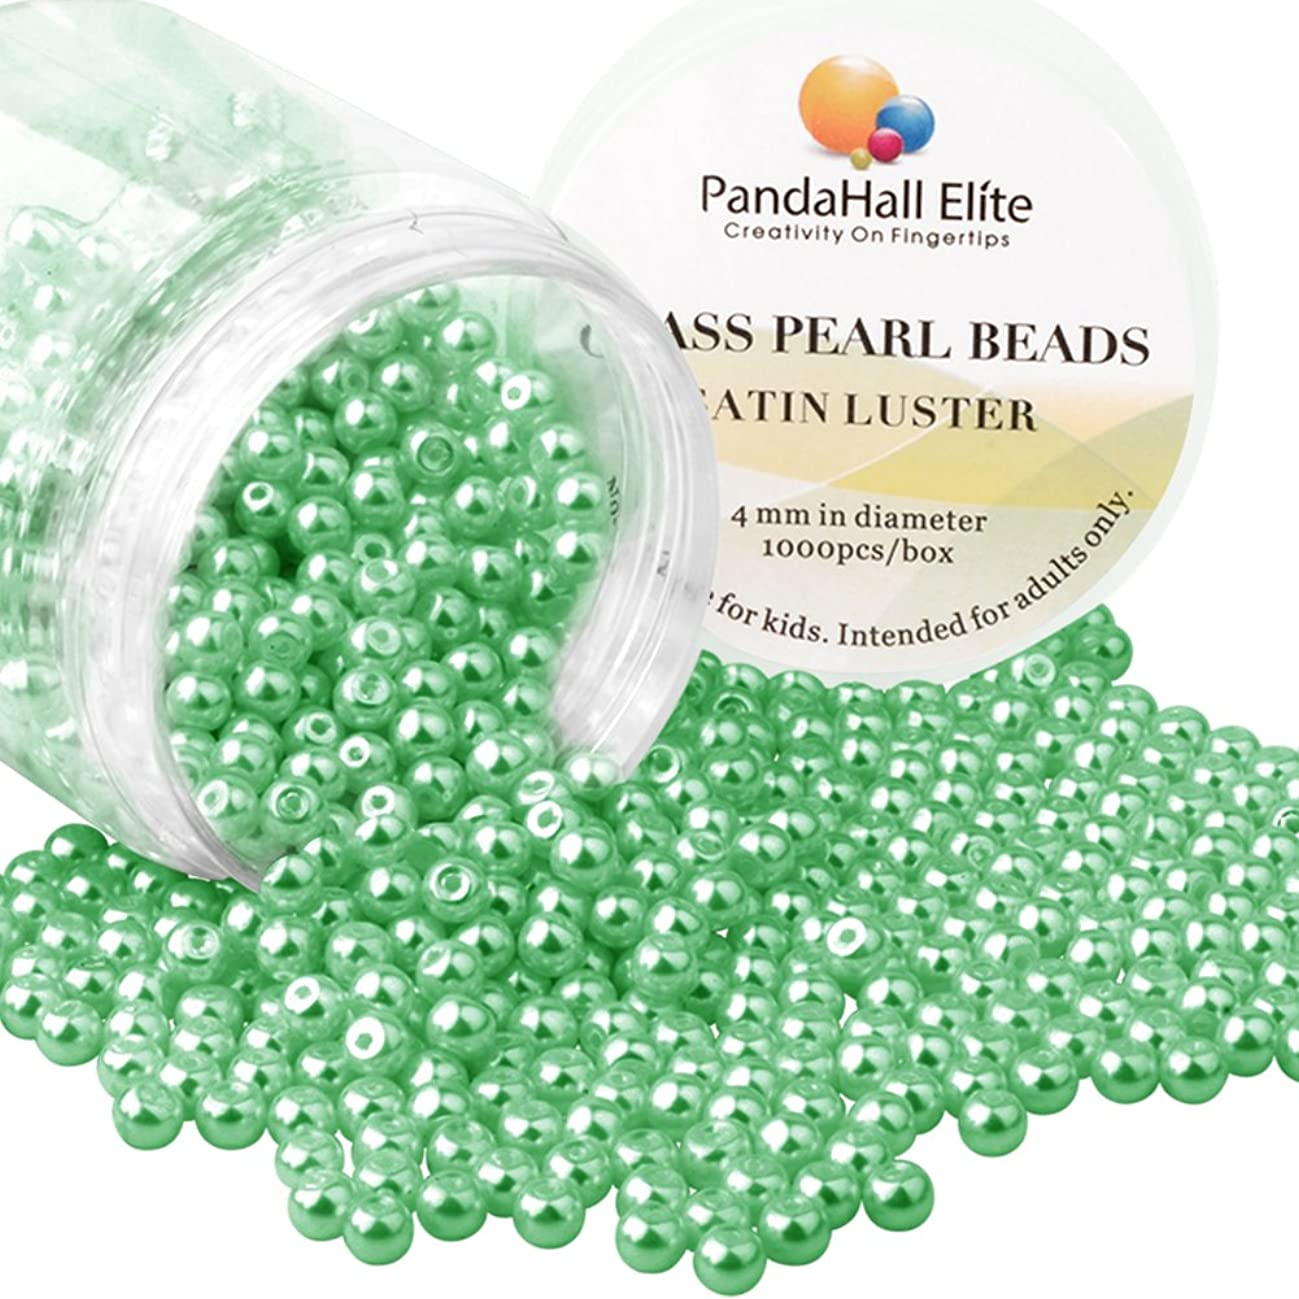 PandaHall Elite About 1000 Pcs 4mm Tiny Satin Luster Glass Pearl Bead Round Loose Spacer Beads for Jewelry Making Green